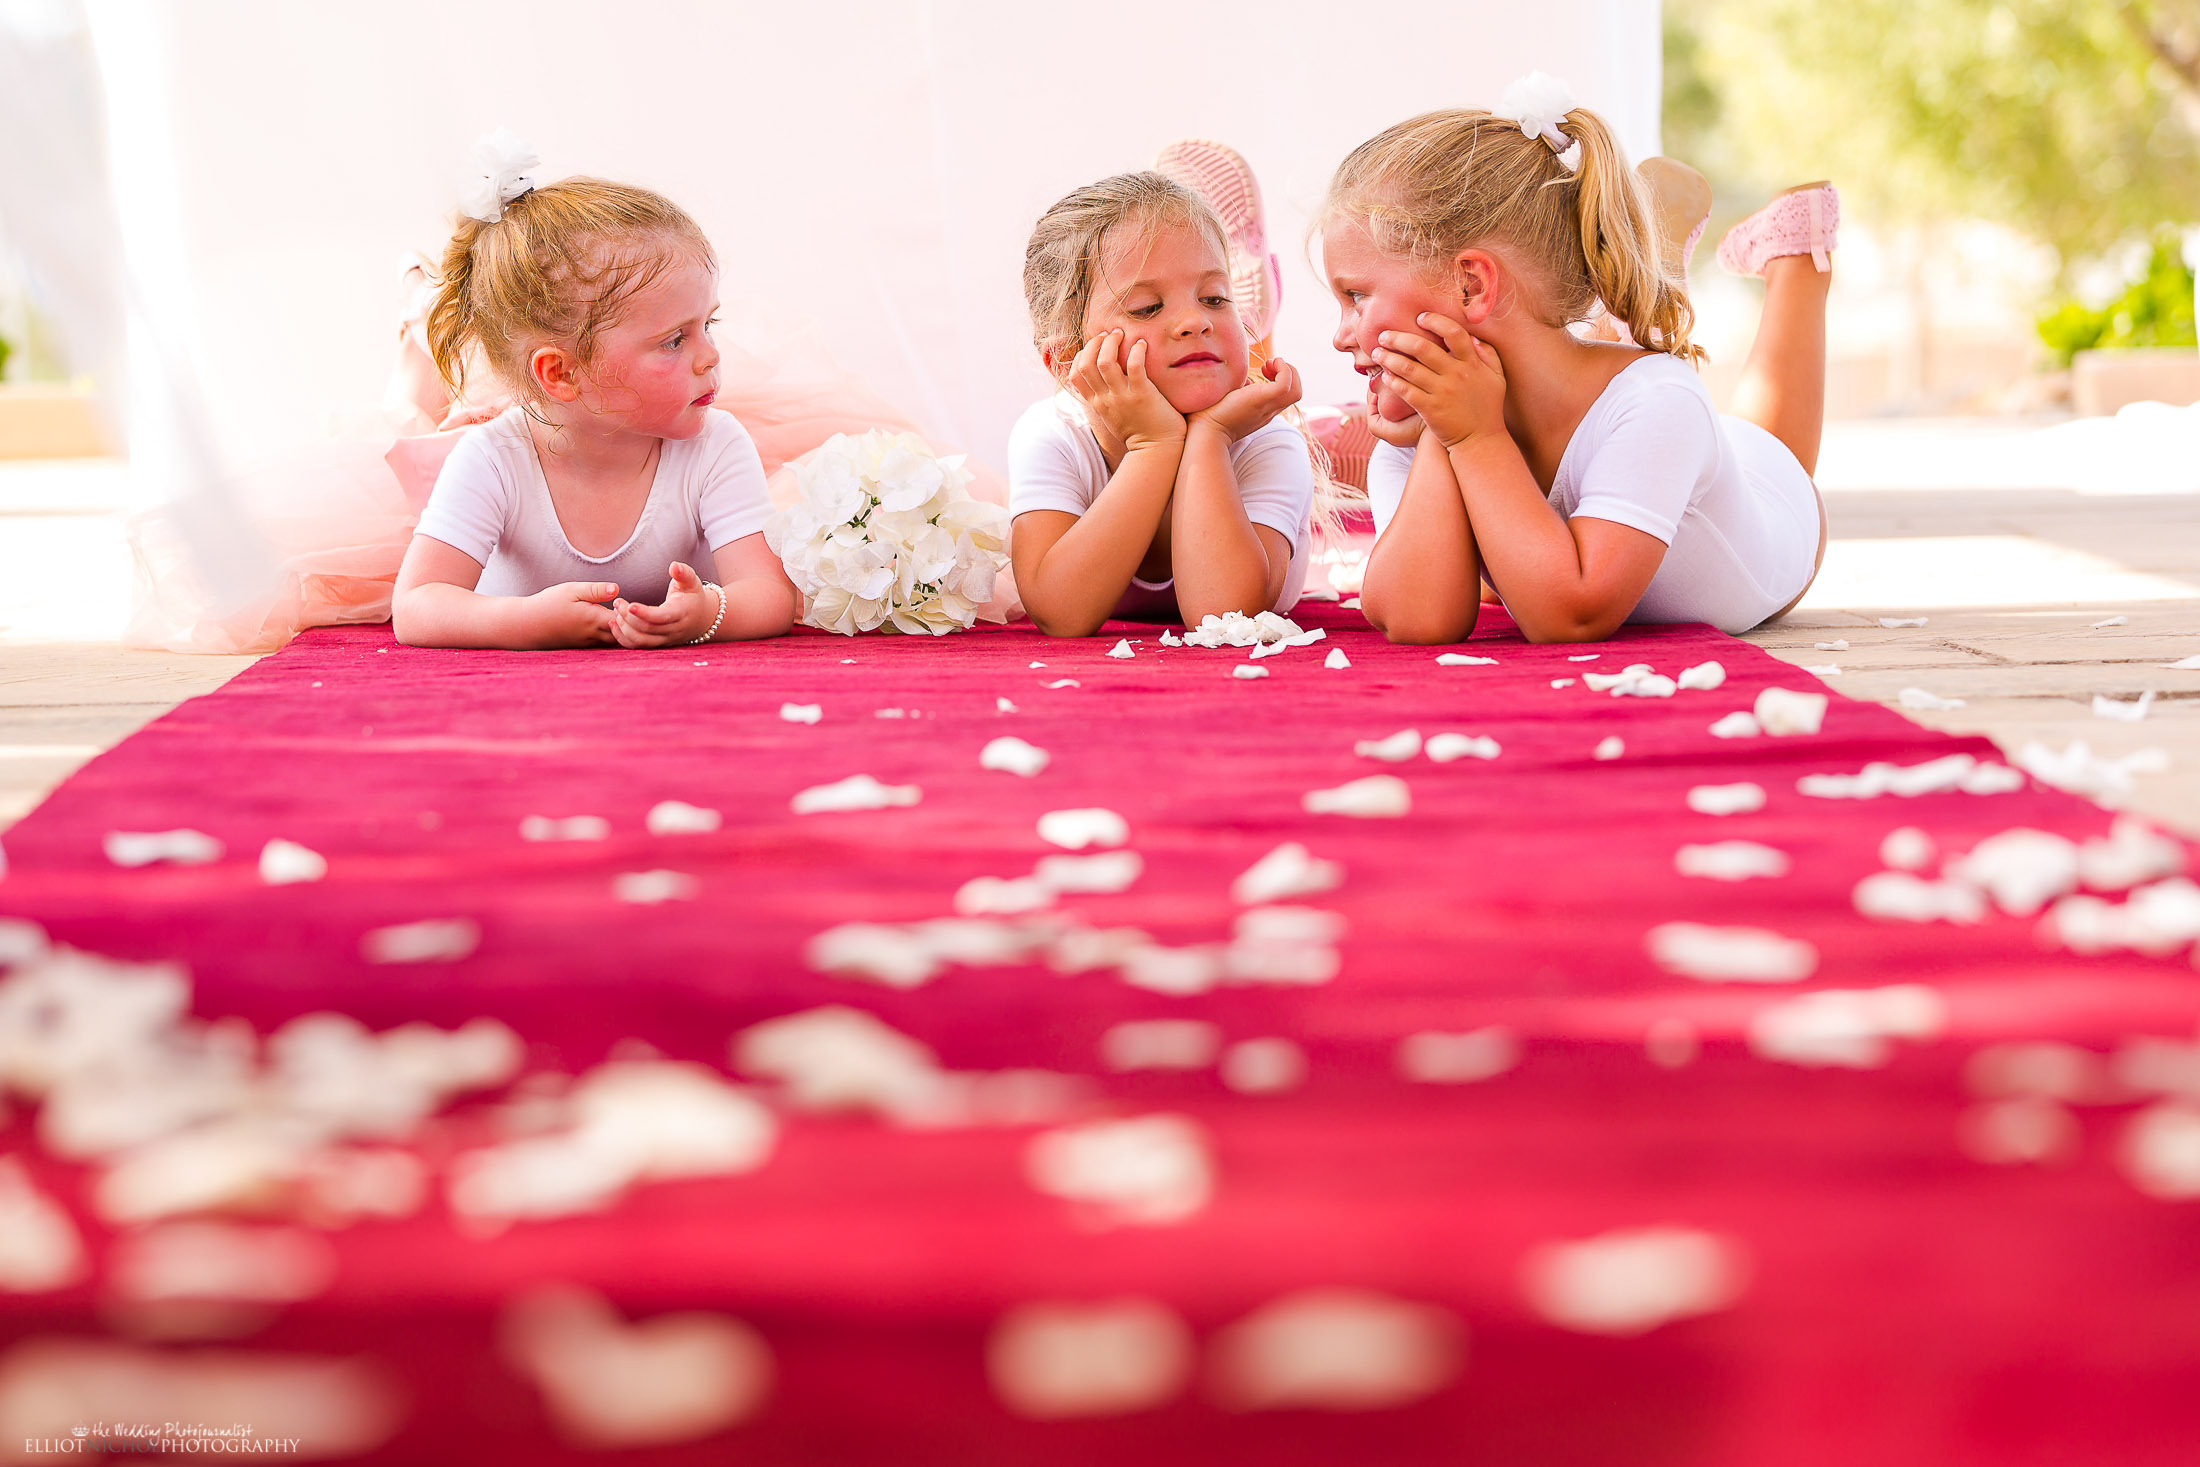 Flower girls reflecting on their working roles during the ceremony. Photo by Elliot Nichol Photography.